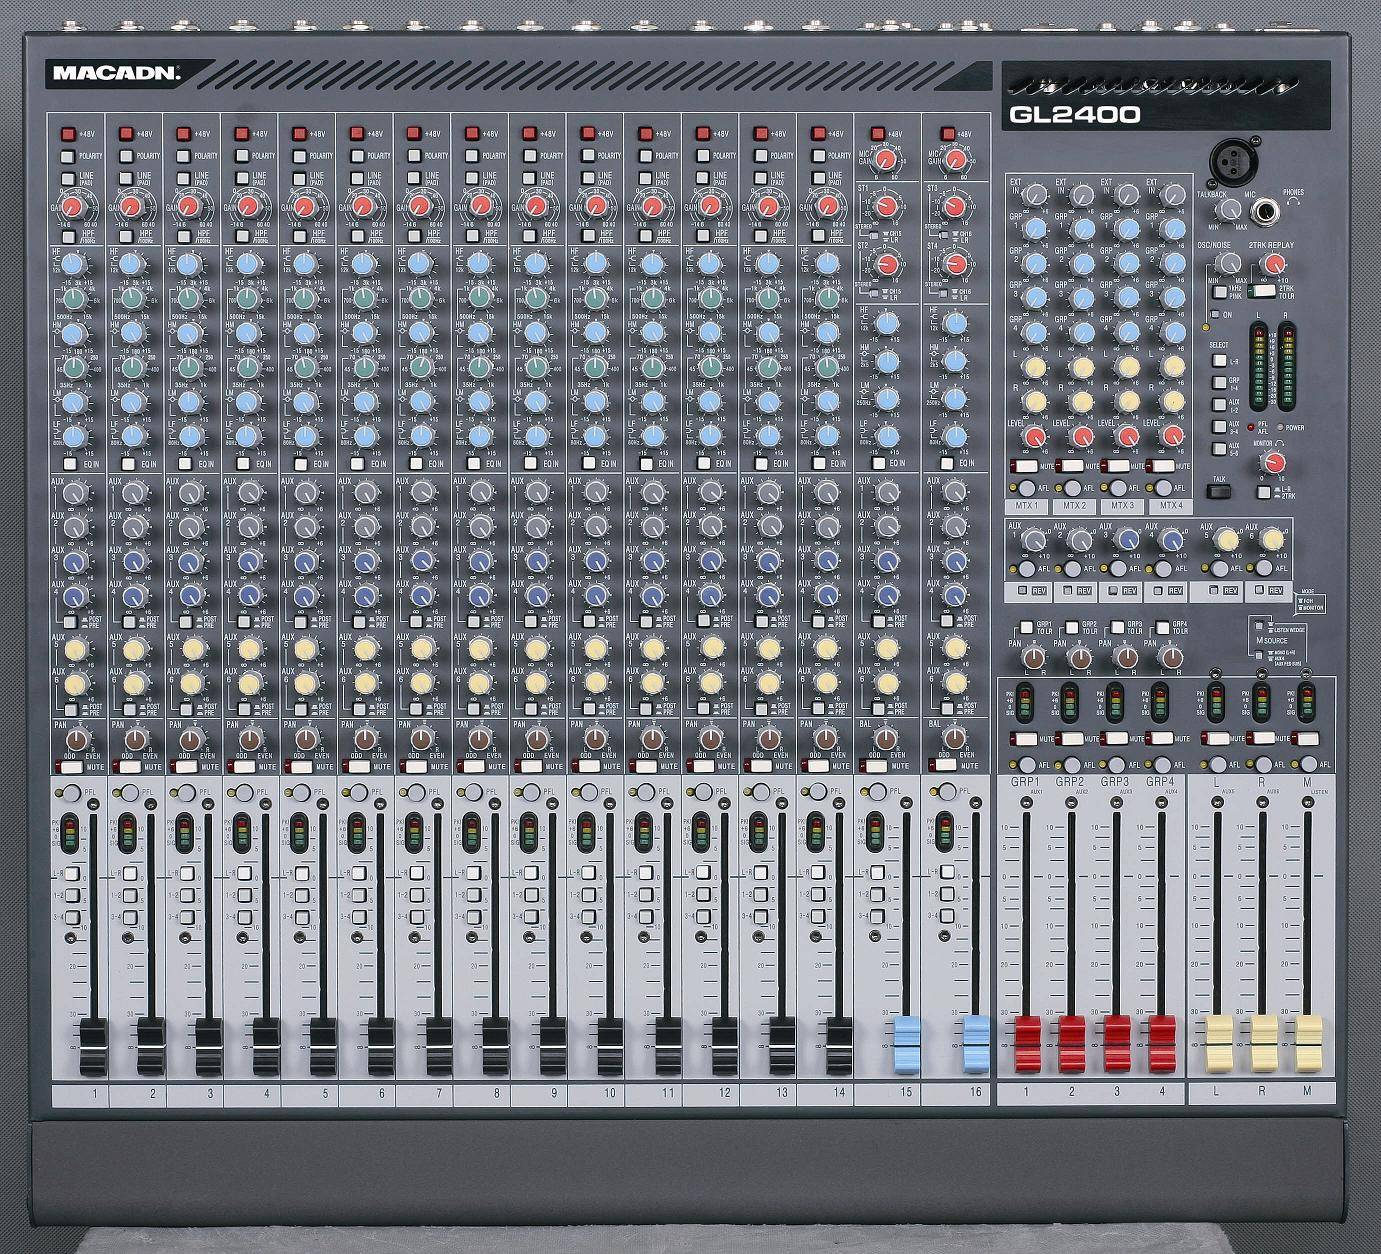 16/24/32/40 channel mixer GL2400-16